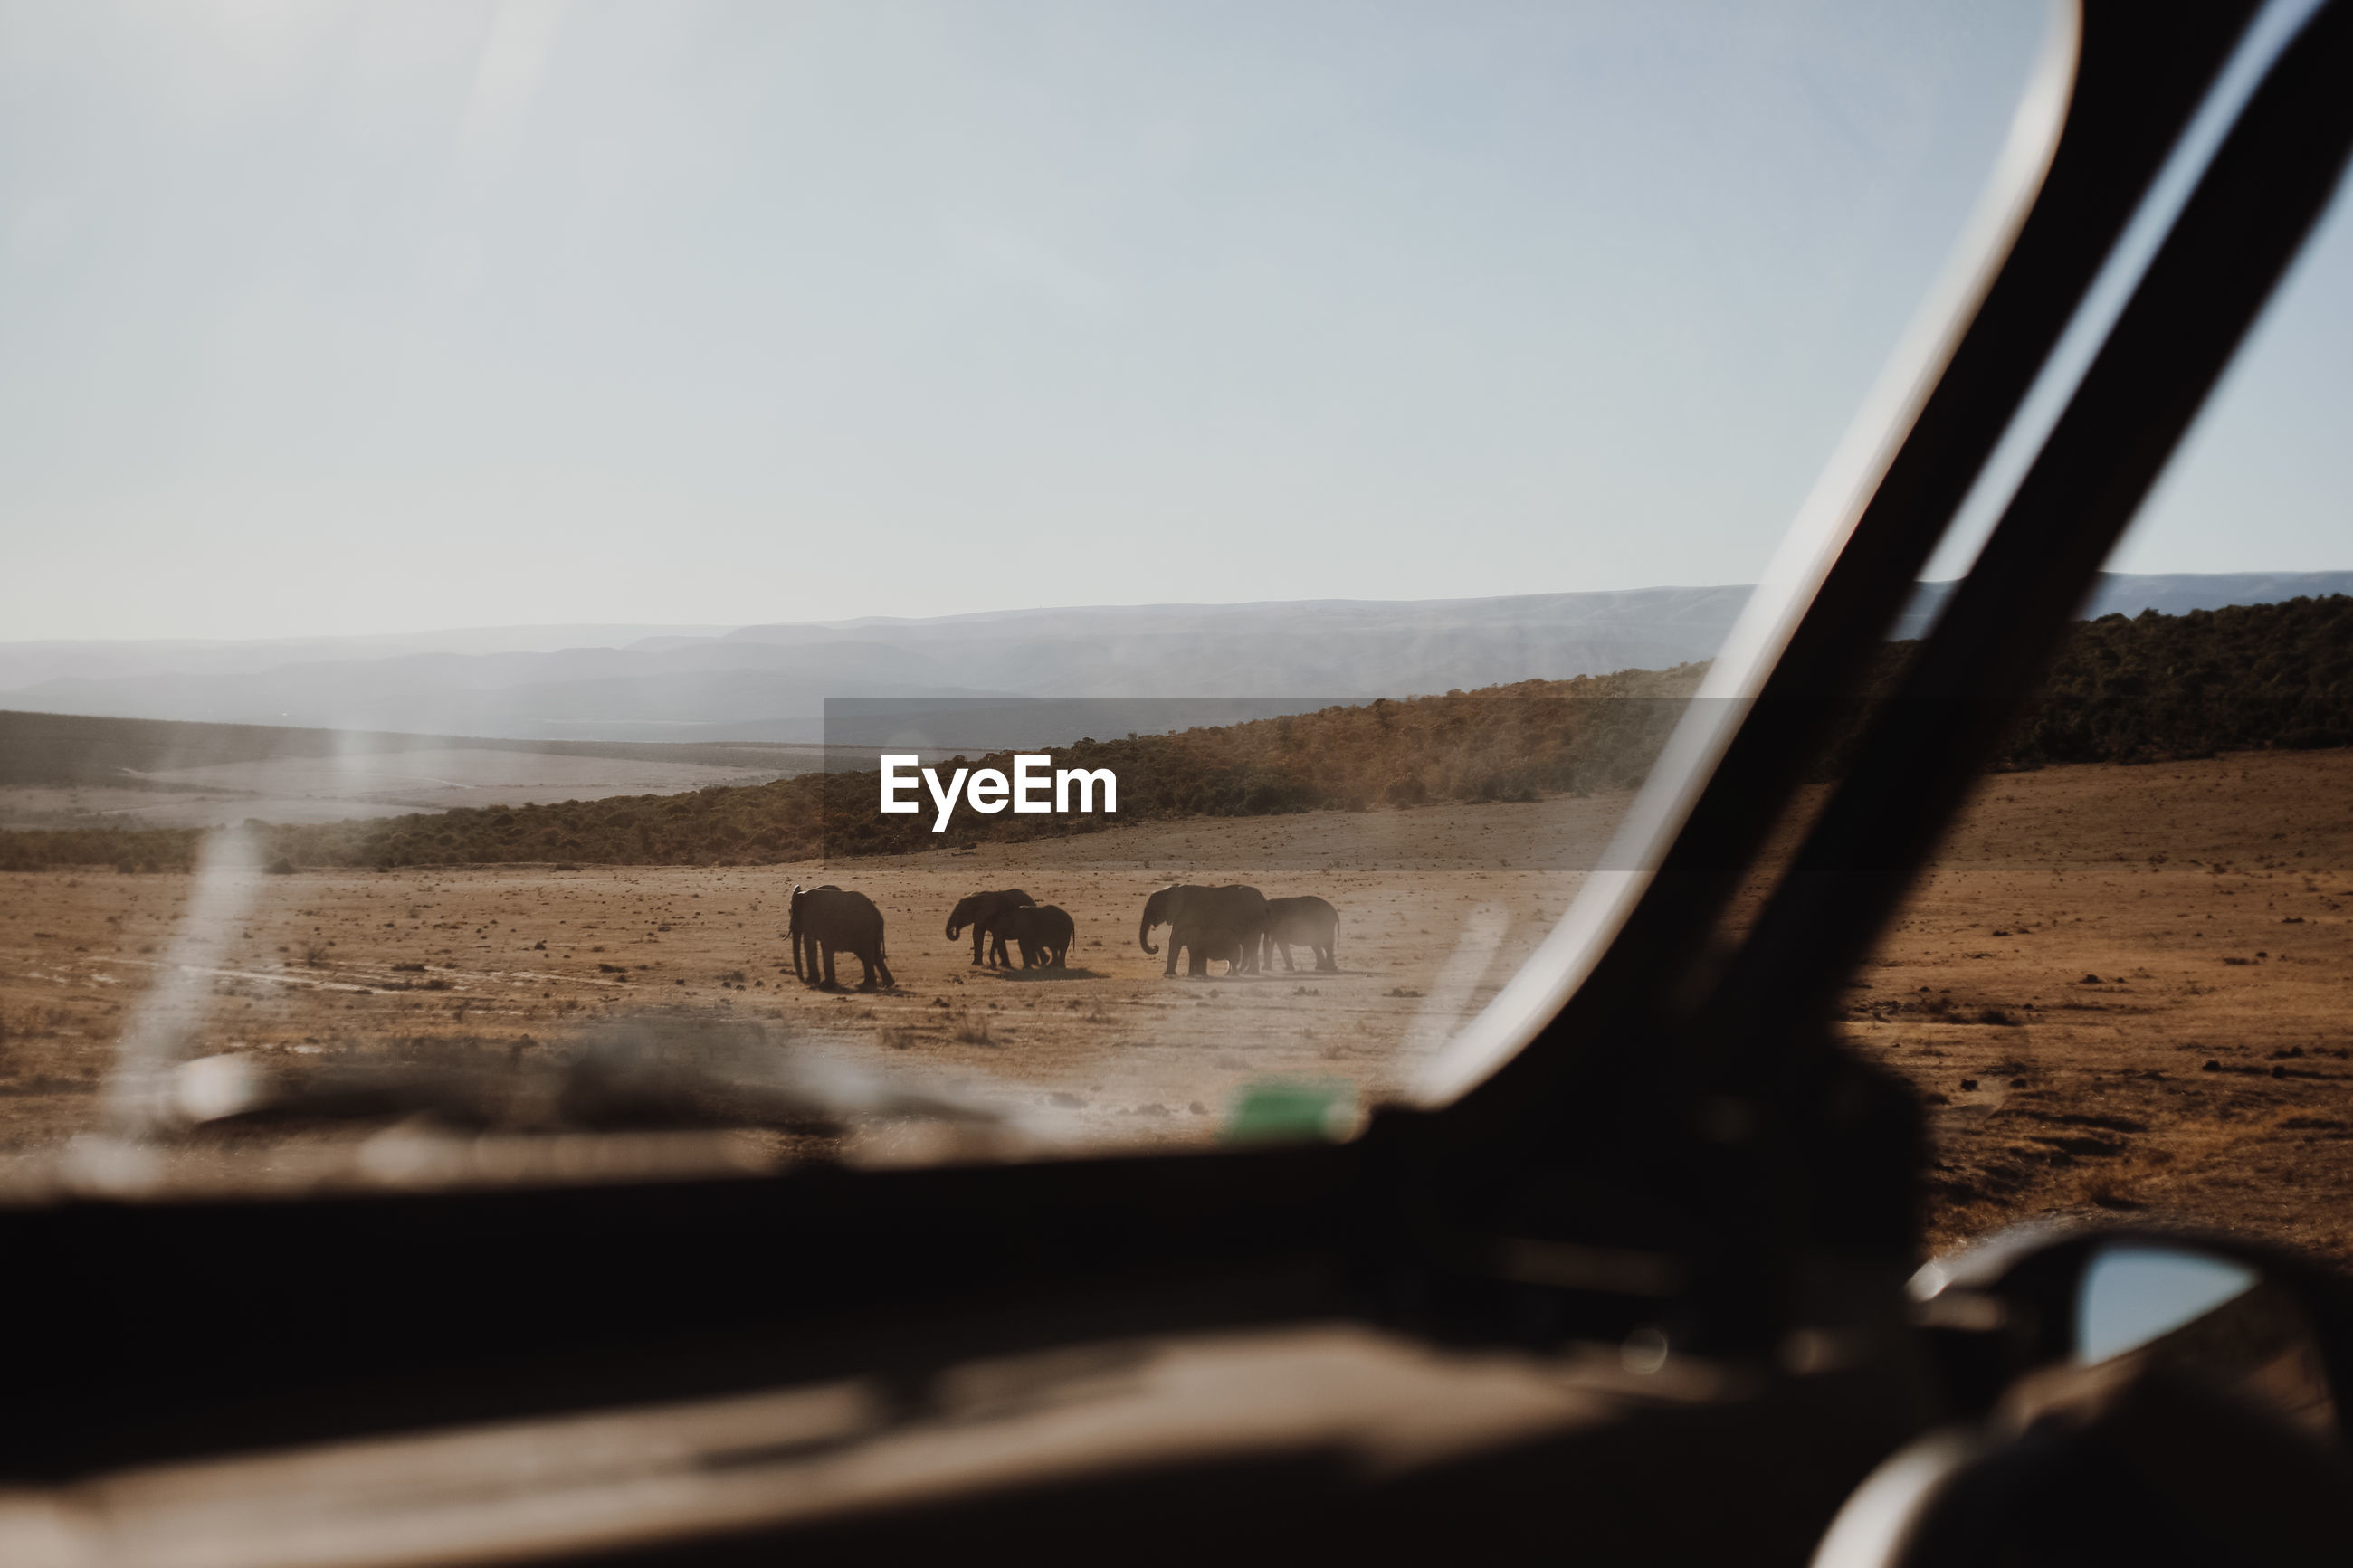 Elephants on landscape seen through car windshield